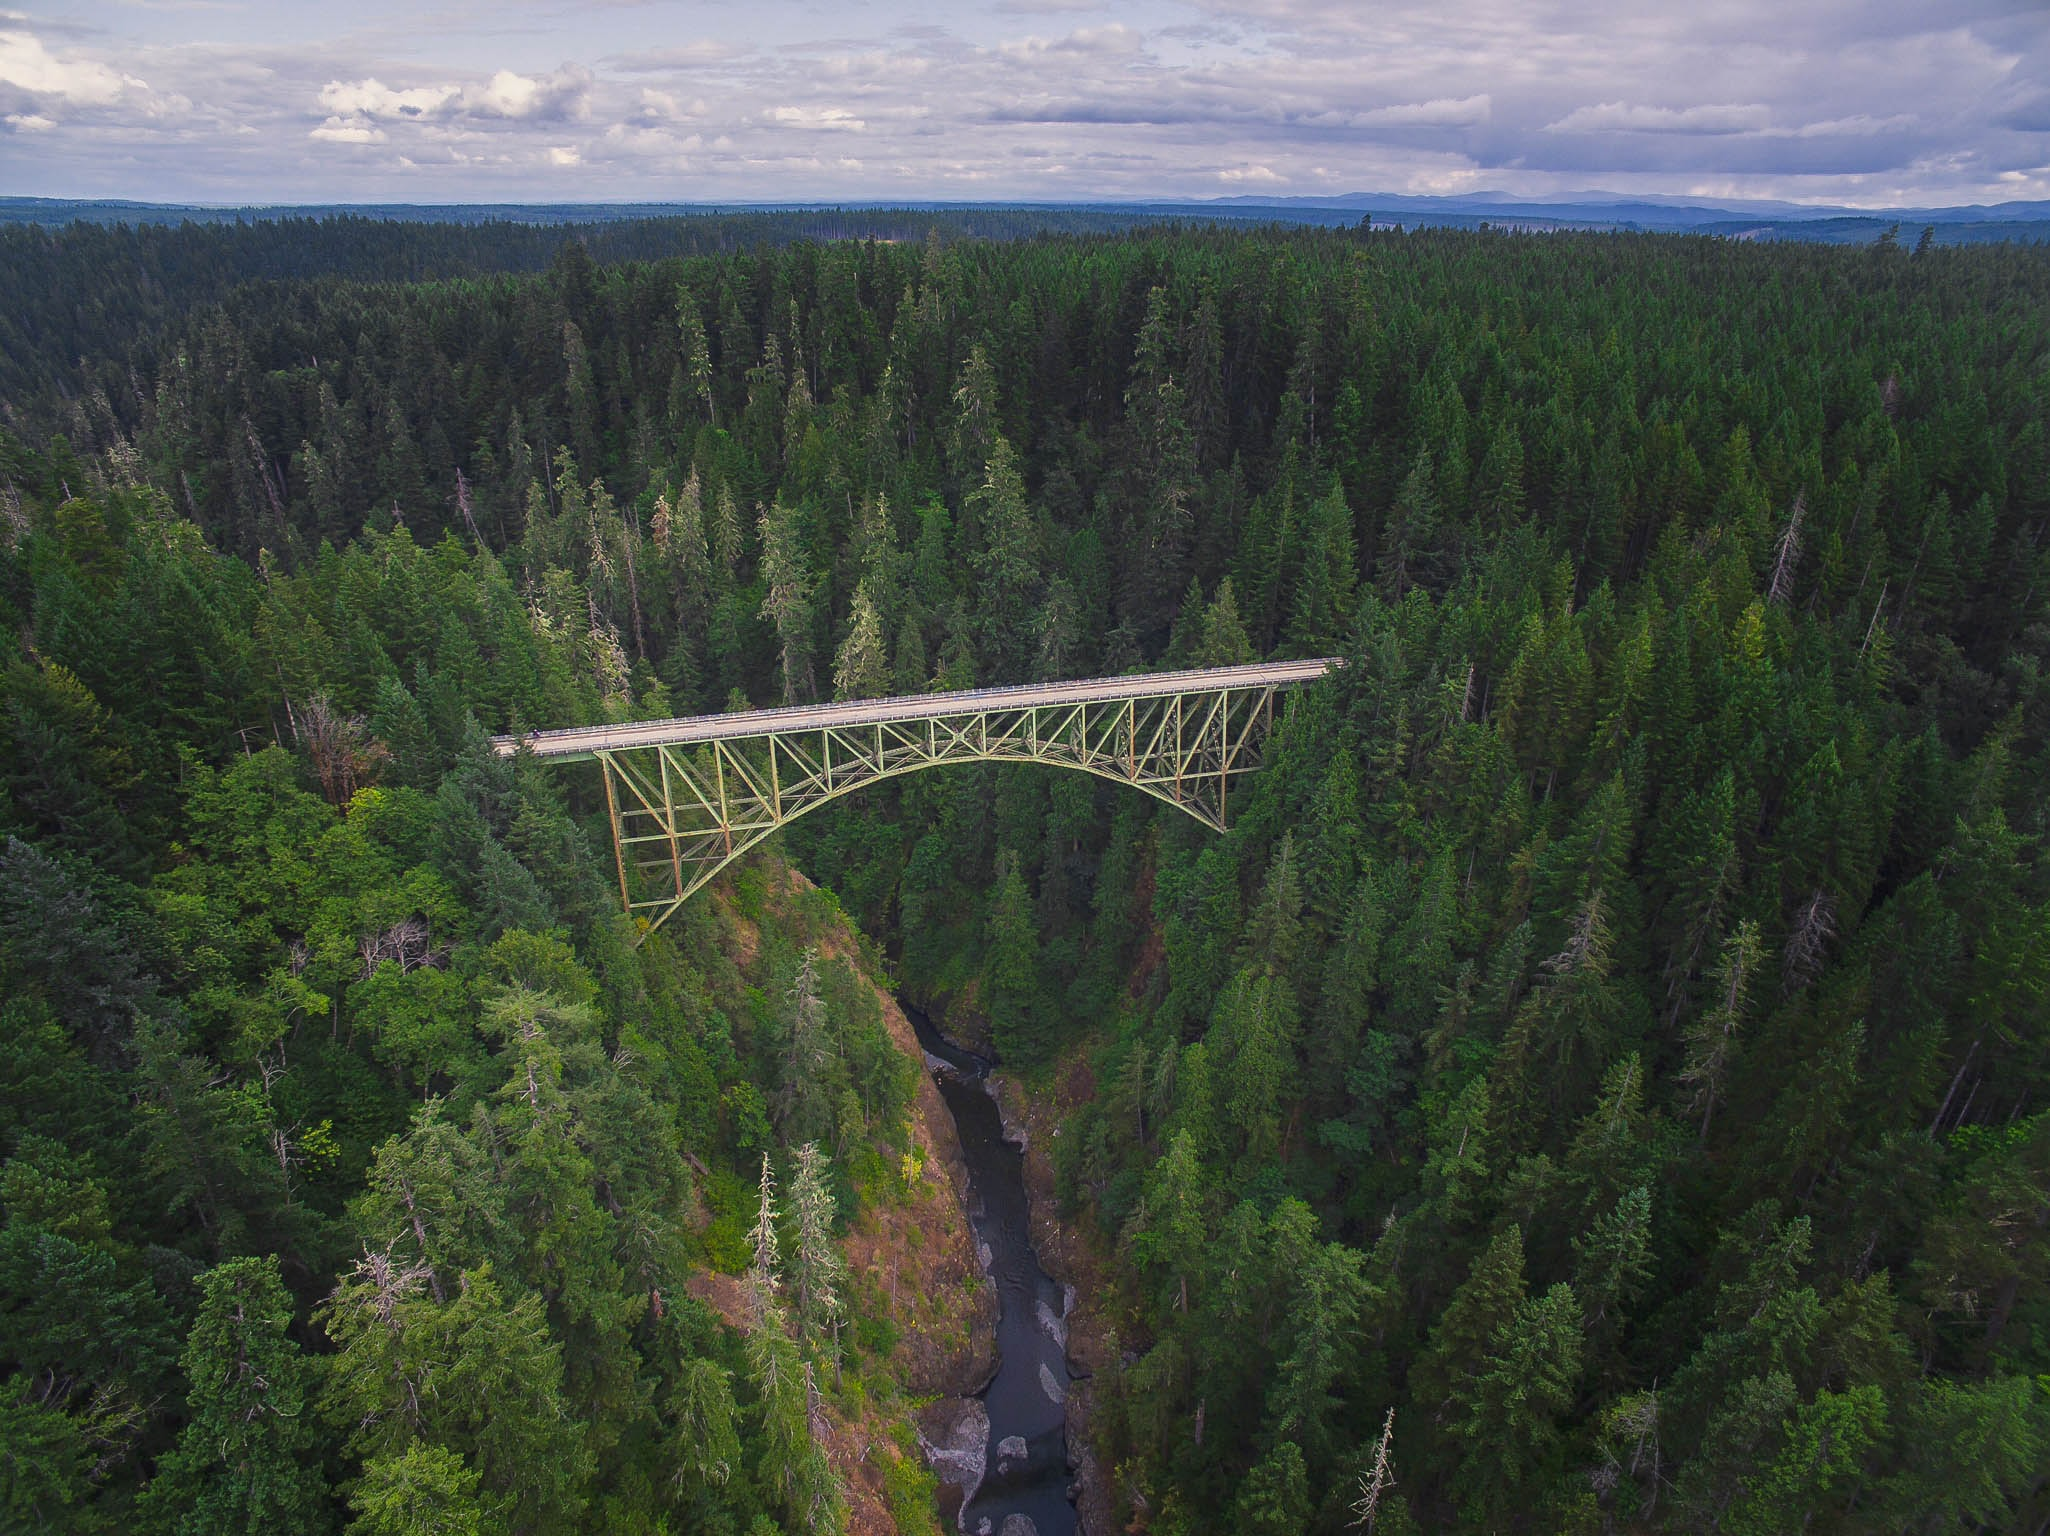 A steel bridge in a forest high above a ravine